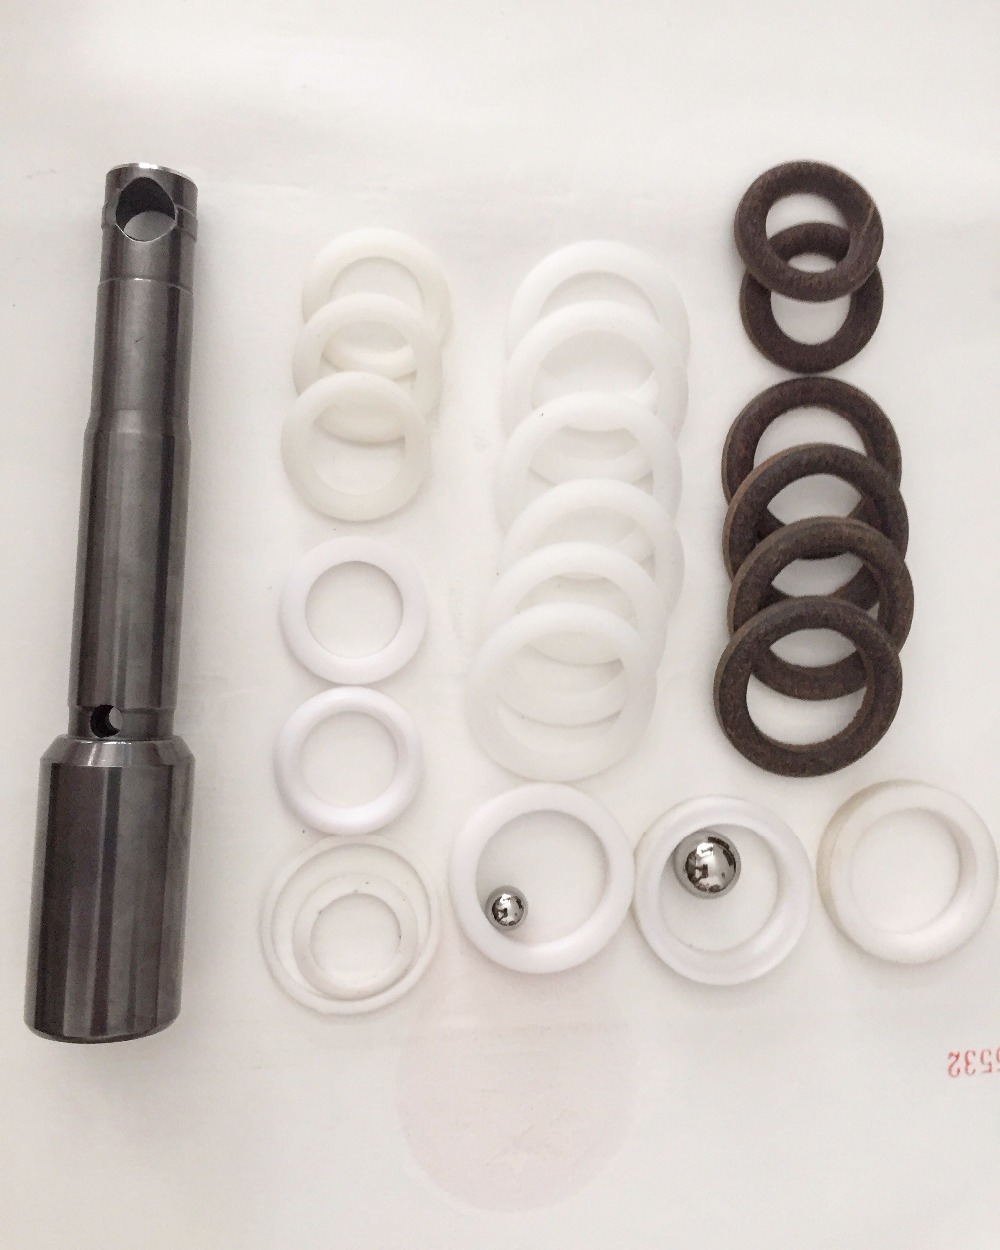 Airlessco Pump Repair Kit For 460 540 690 Airless Sprayer Spare Parts 331-210 331210 With 331708 Piston Rod 331-708